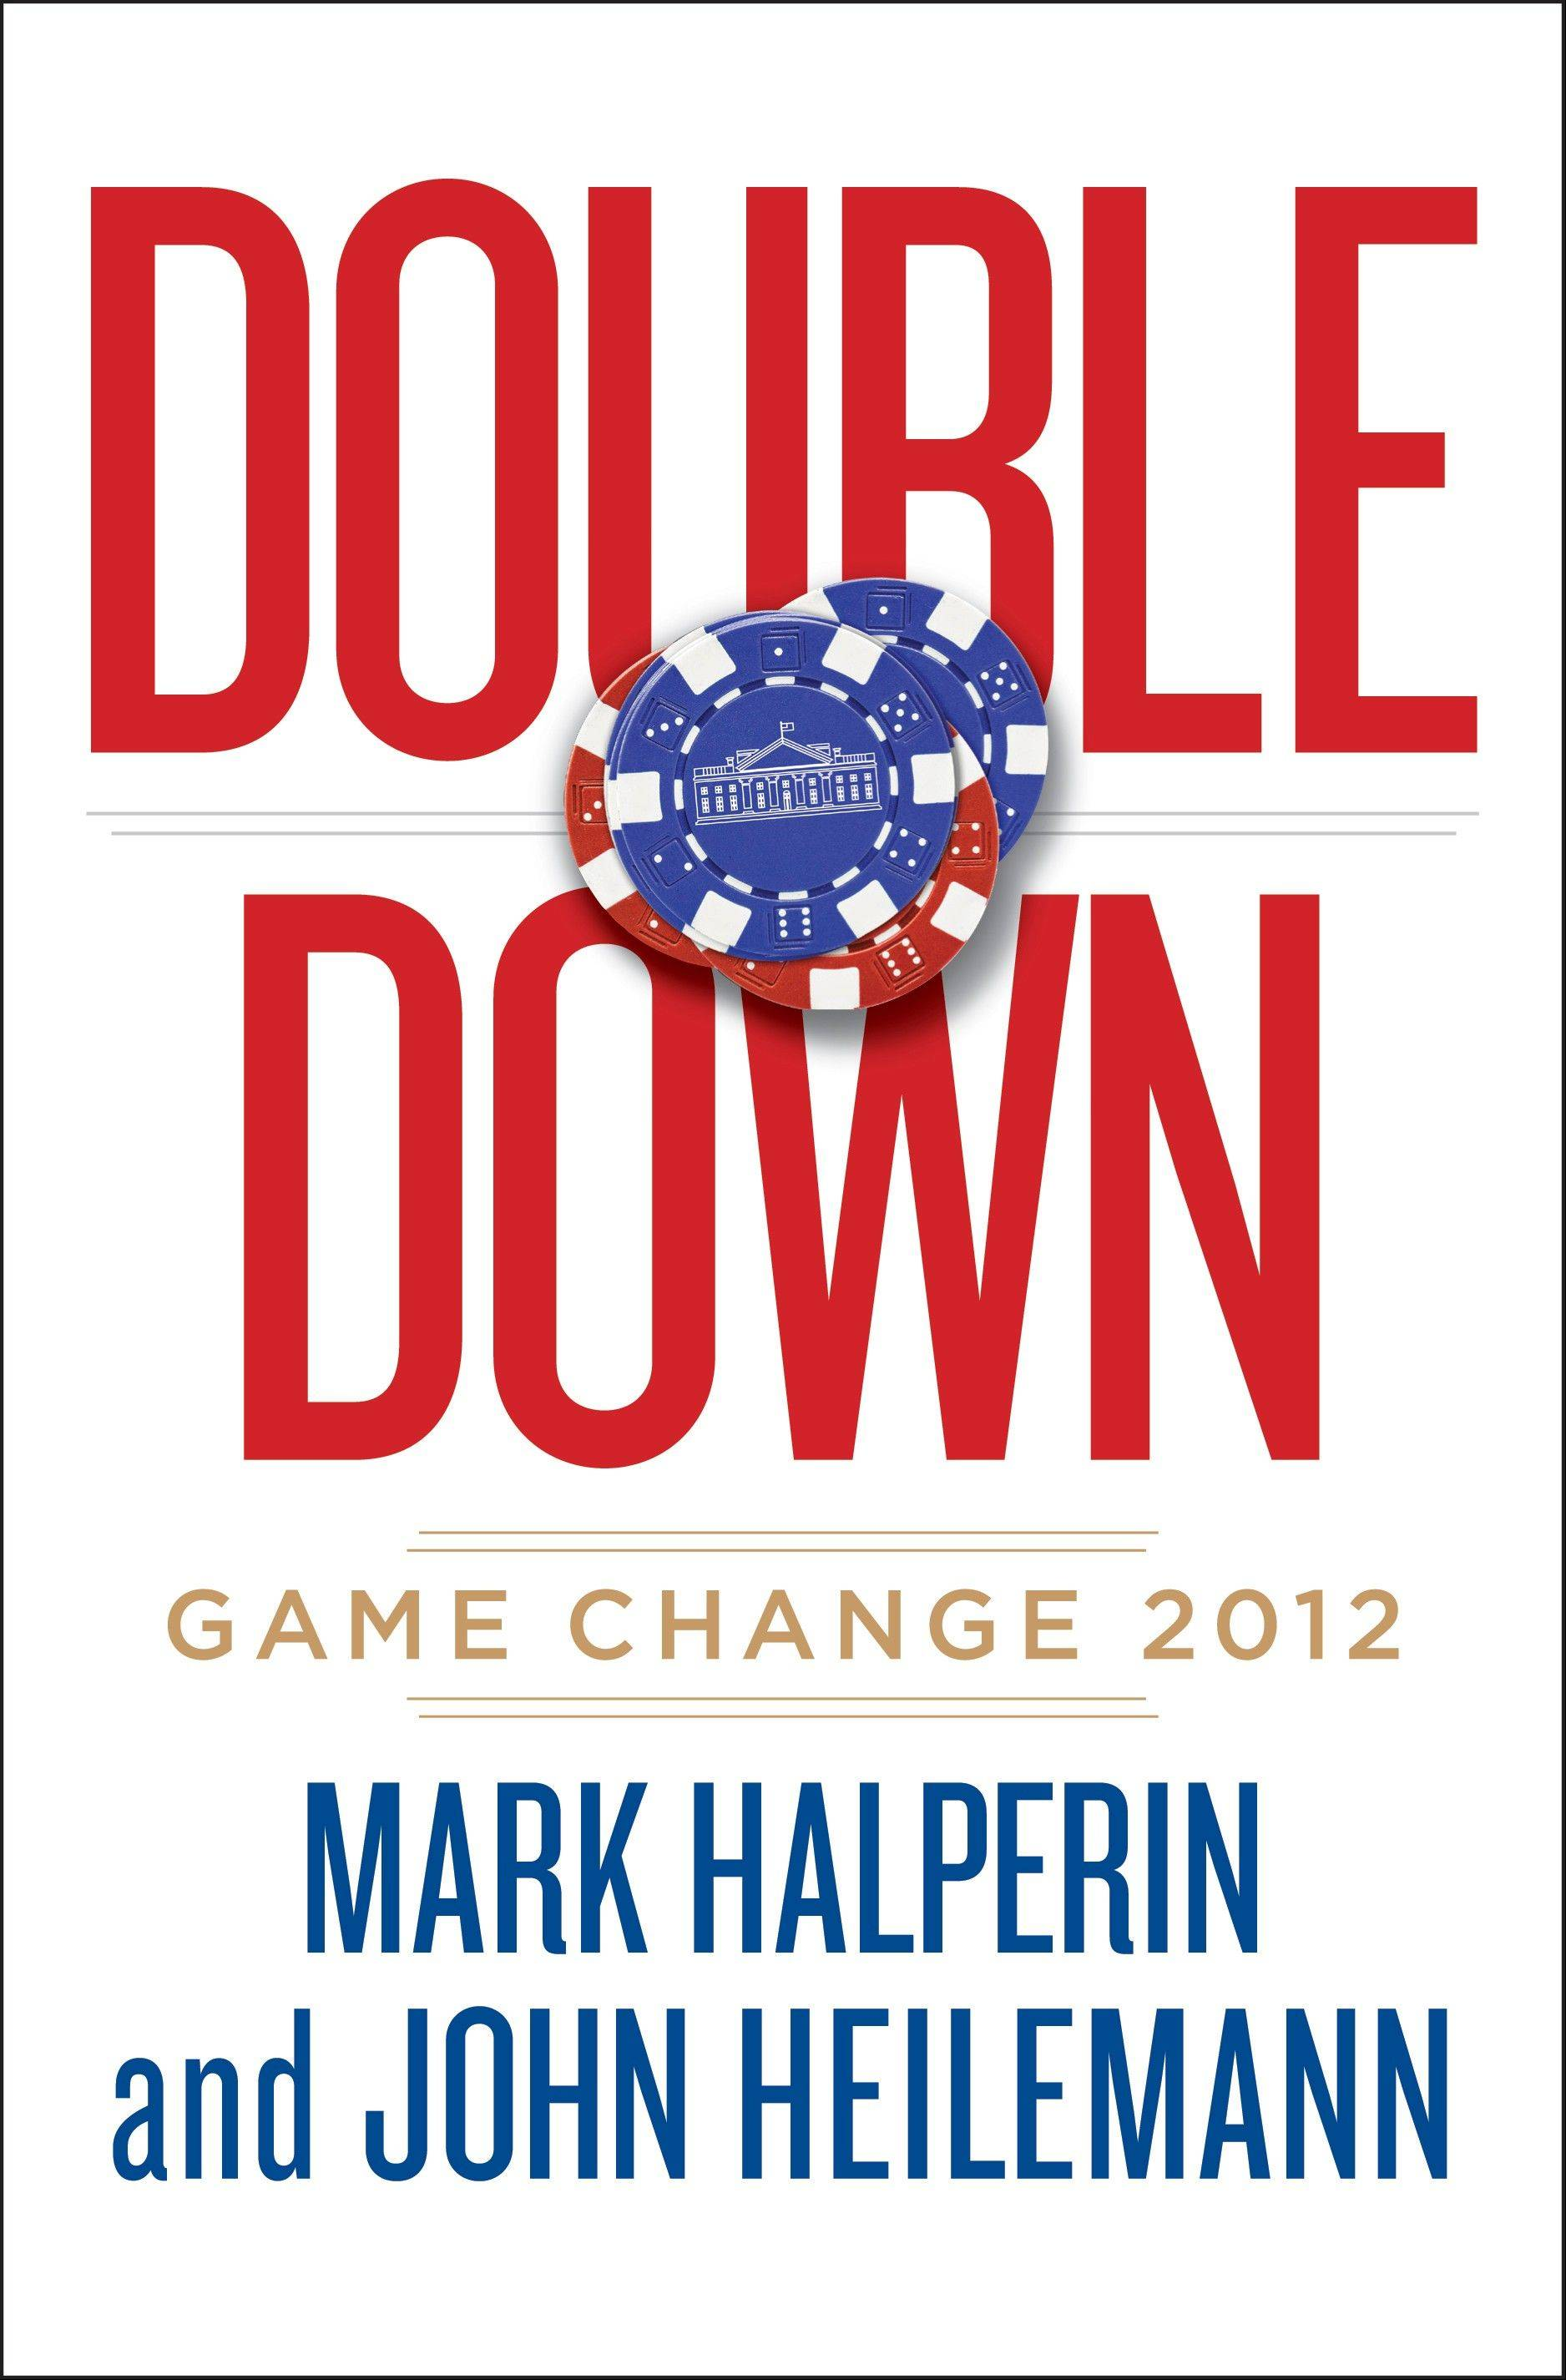 """Double Down: Game Change 2012"" is the latest release from Mark Halperin and John Heilemann."